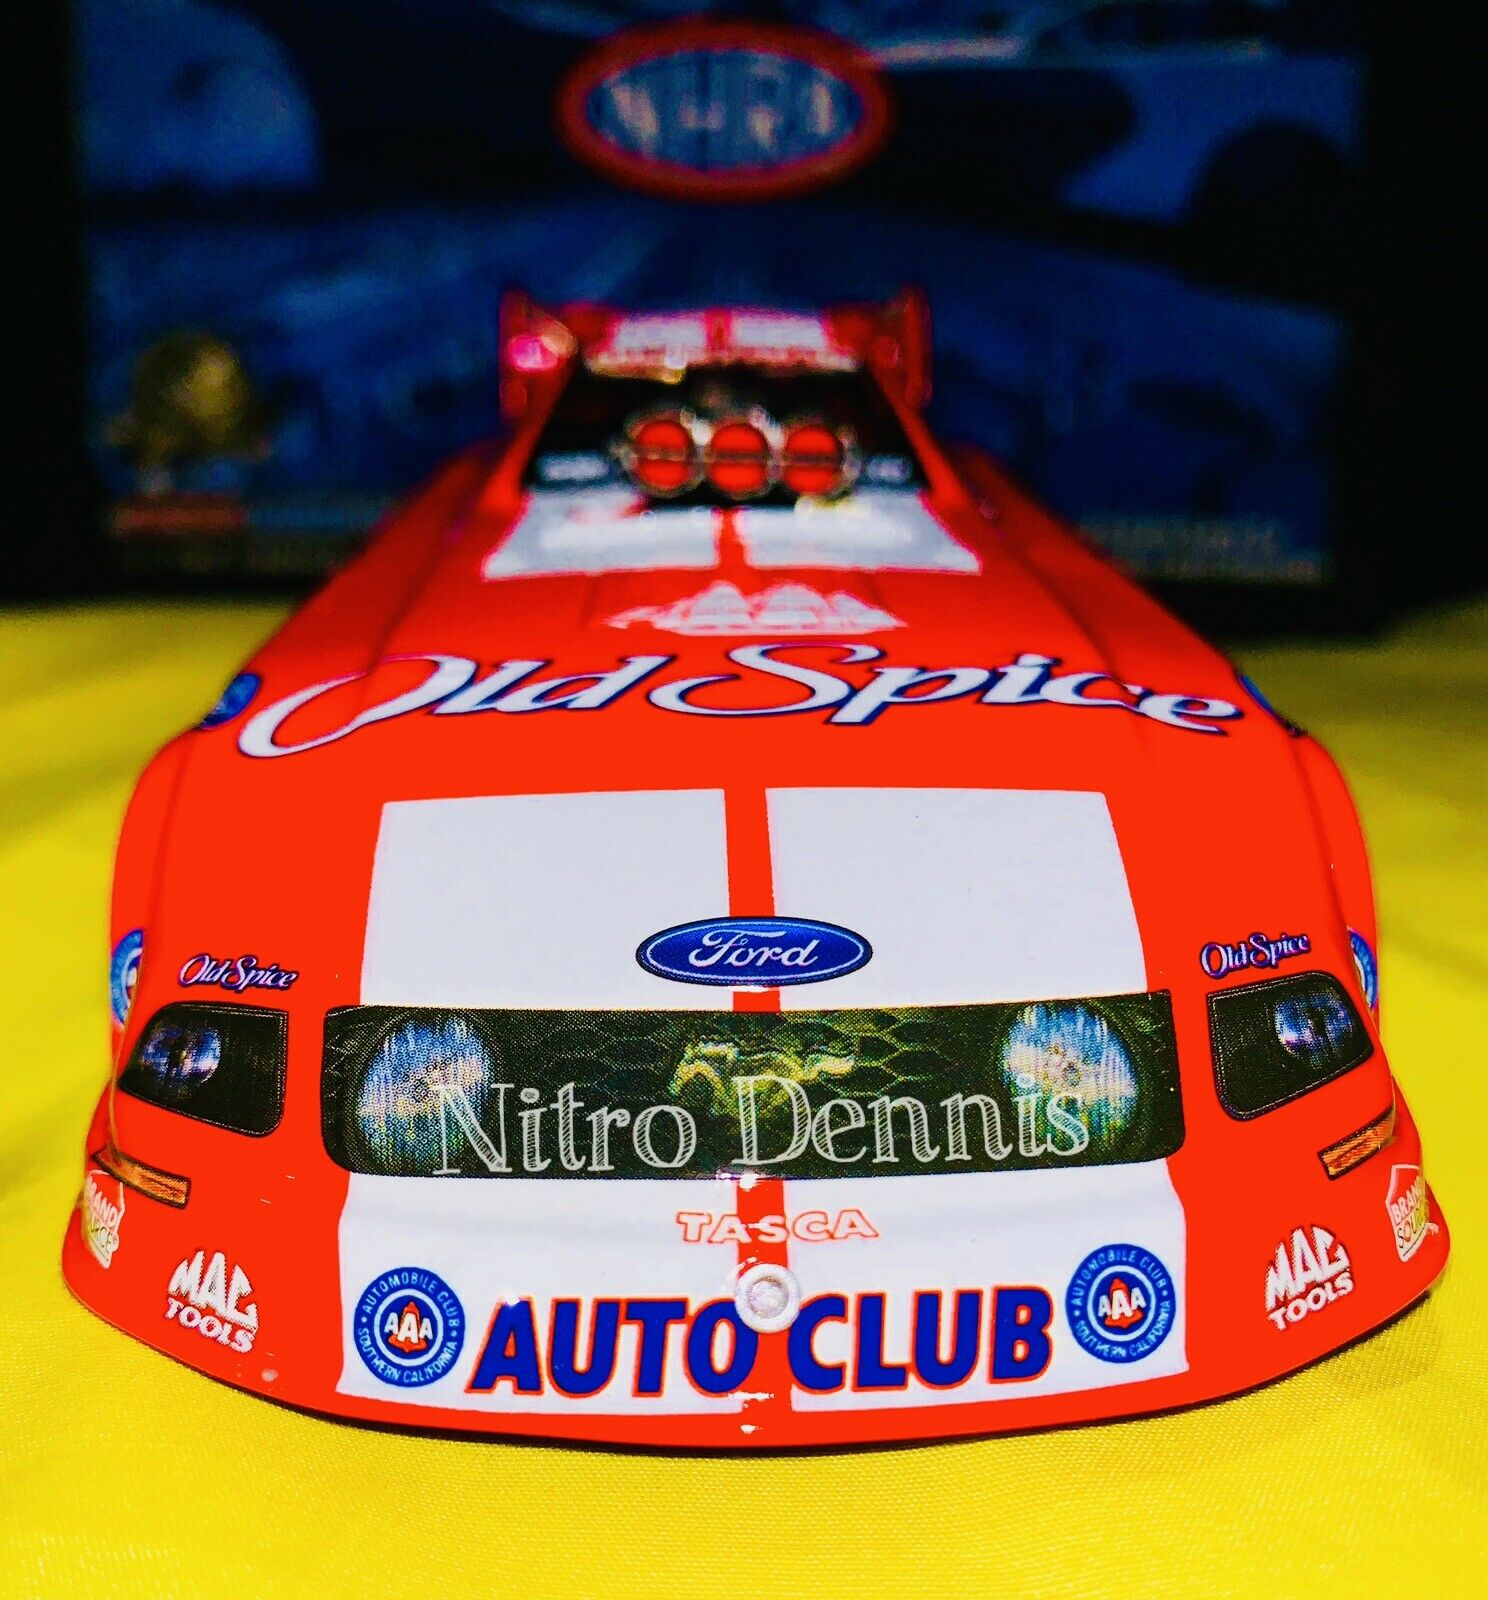 NHRA JOHN FORCE RACING 1 24 NITRO Funny Car MIKE NEFF Diecast Action OLD SPICE